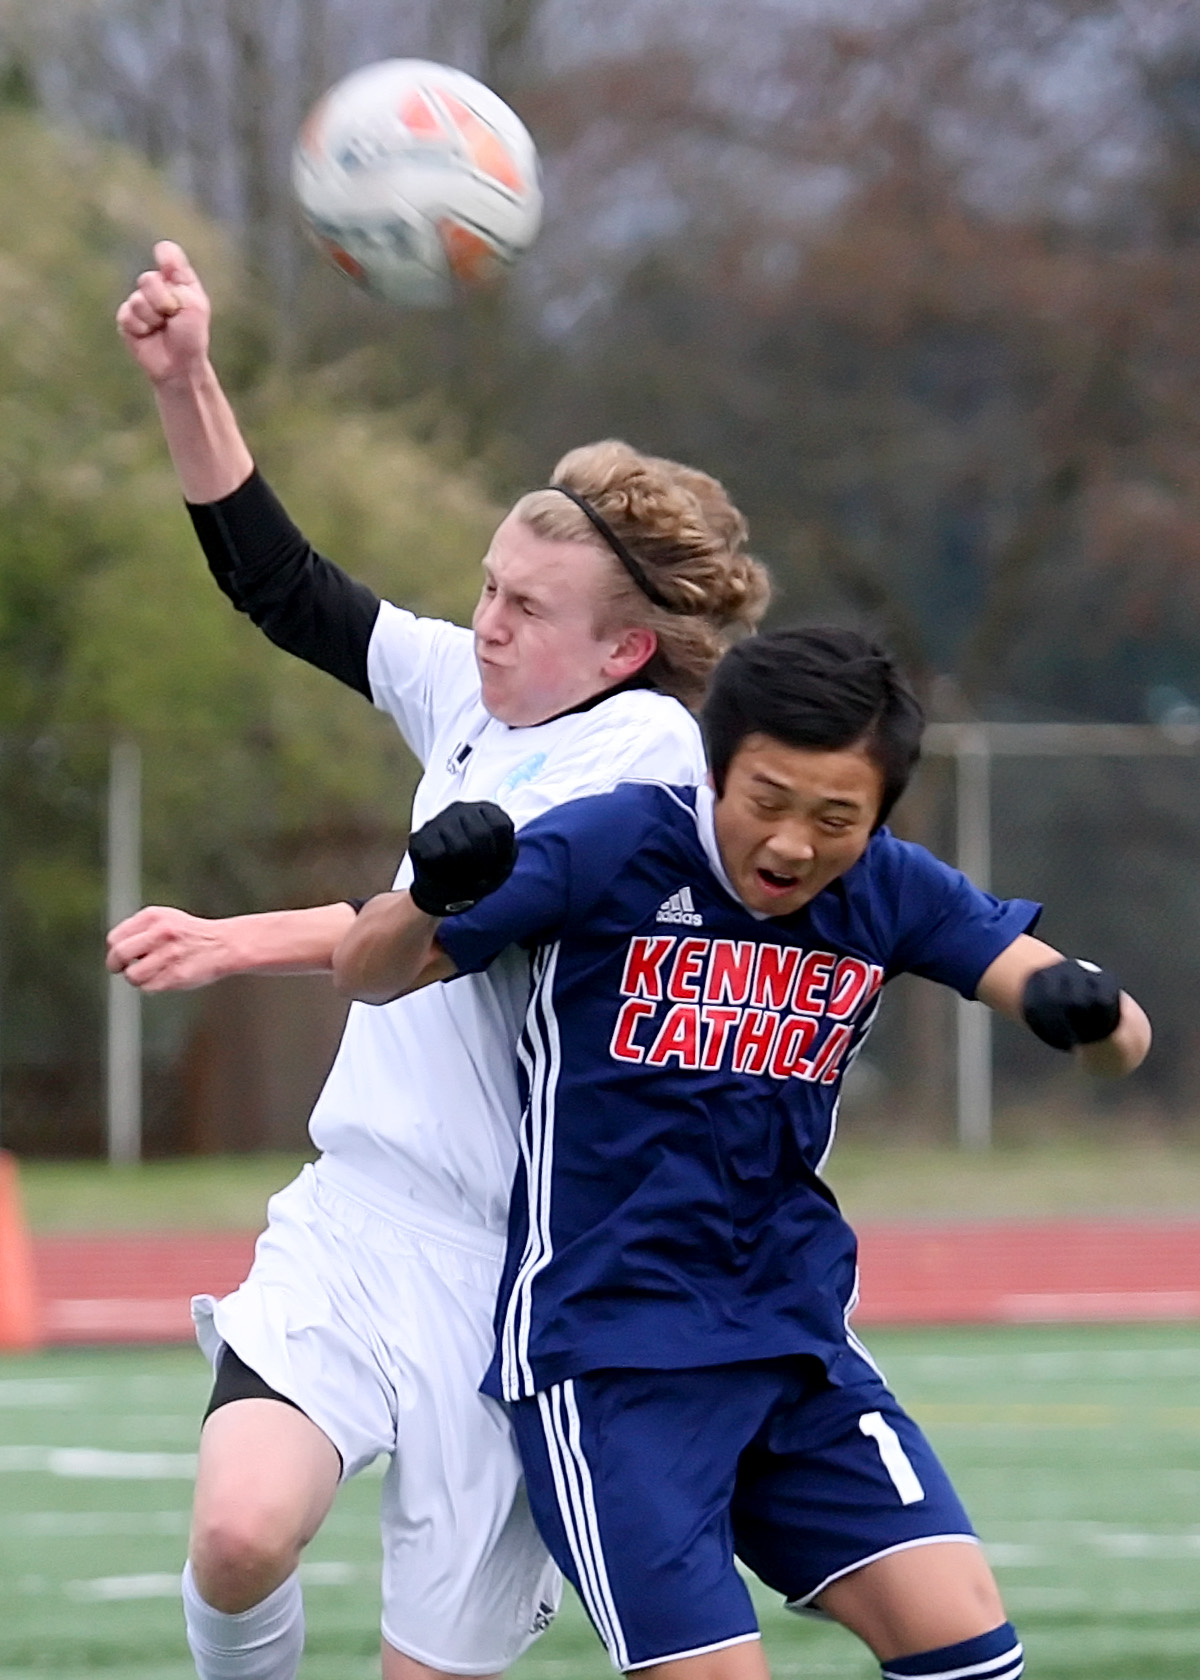 Jake Sylvester of Mt. Rainier and Kennedy Catholic's Julius Nguyen collide trying to head the ball.